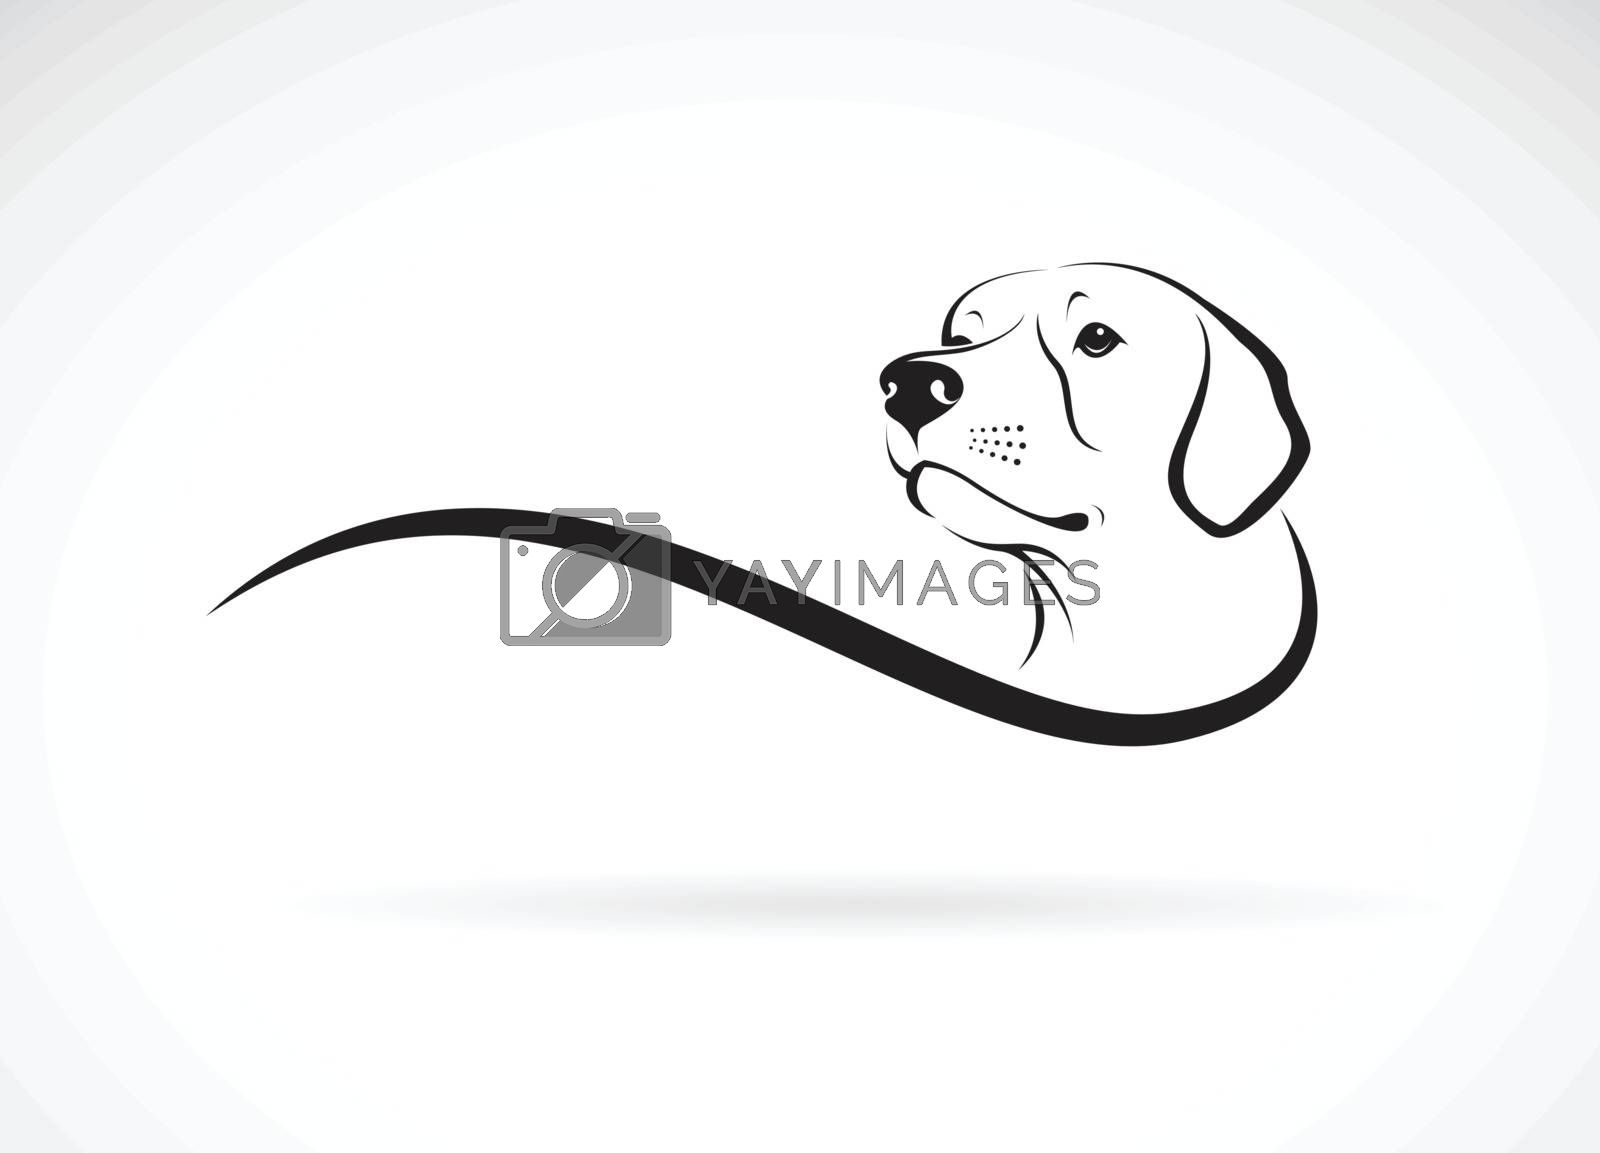 Vector of a dog head(Labrador Retriever) on white background., Pet. Animals. Dogs logo or icon. Easy editable layered vector illustration.